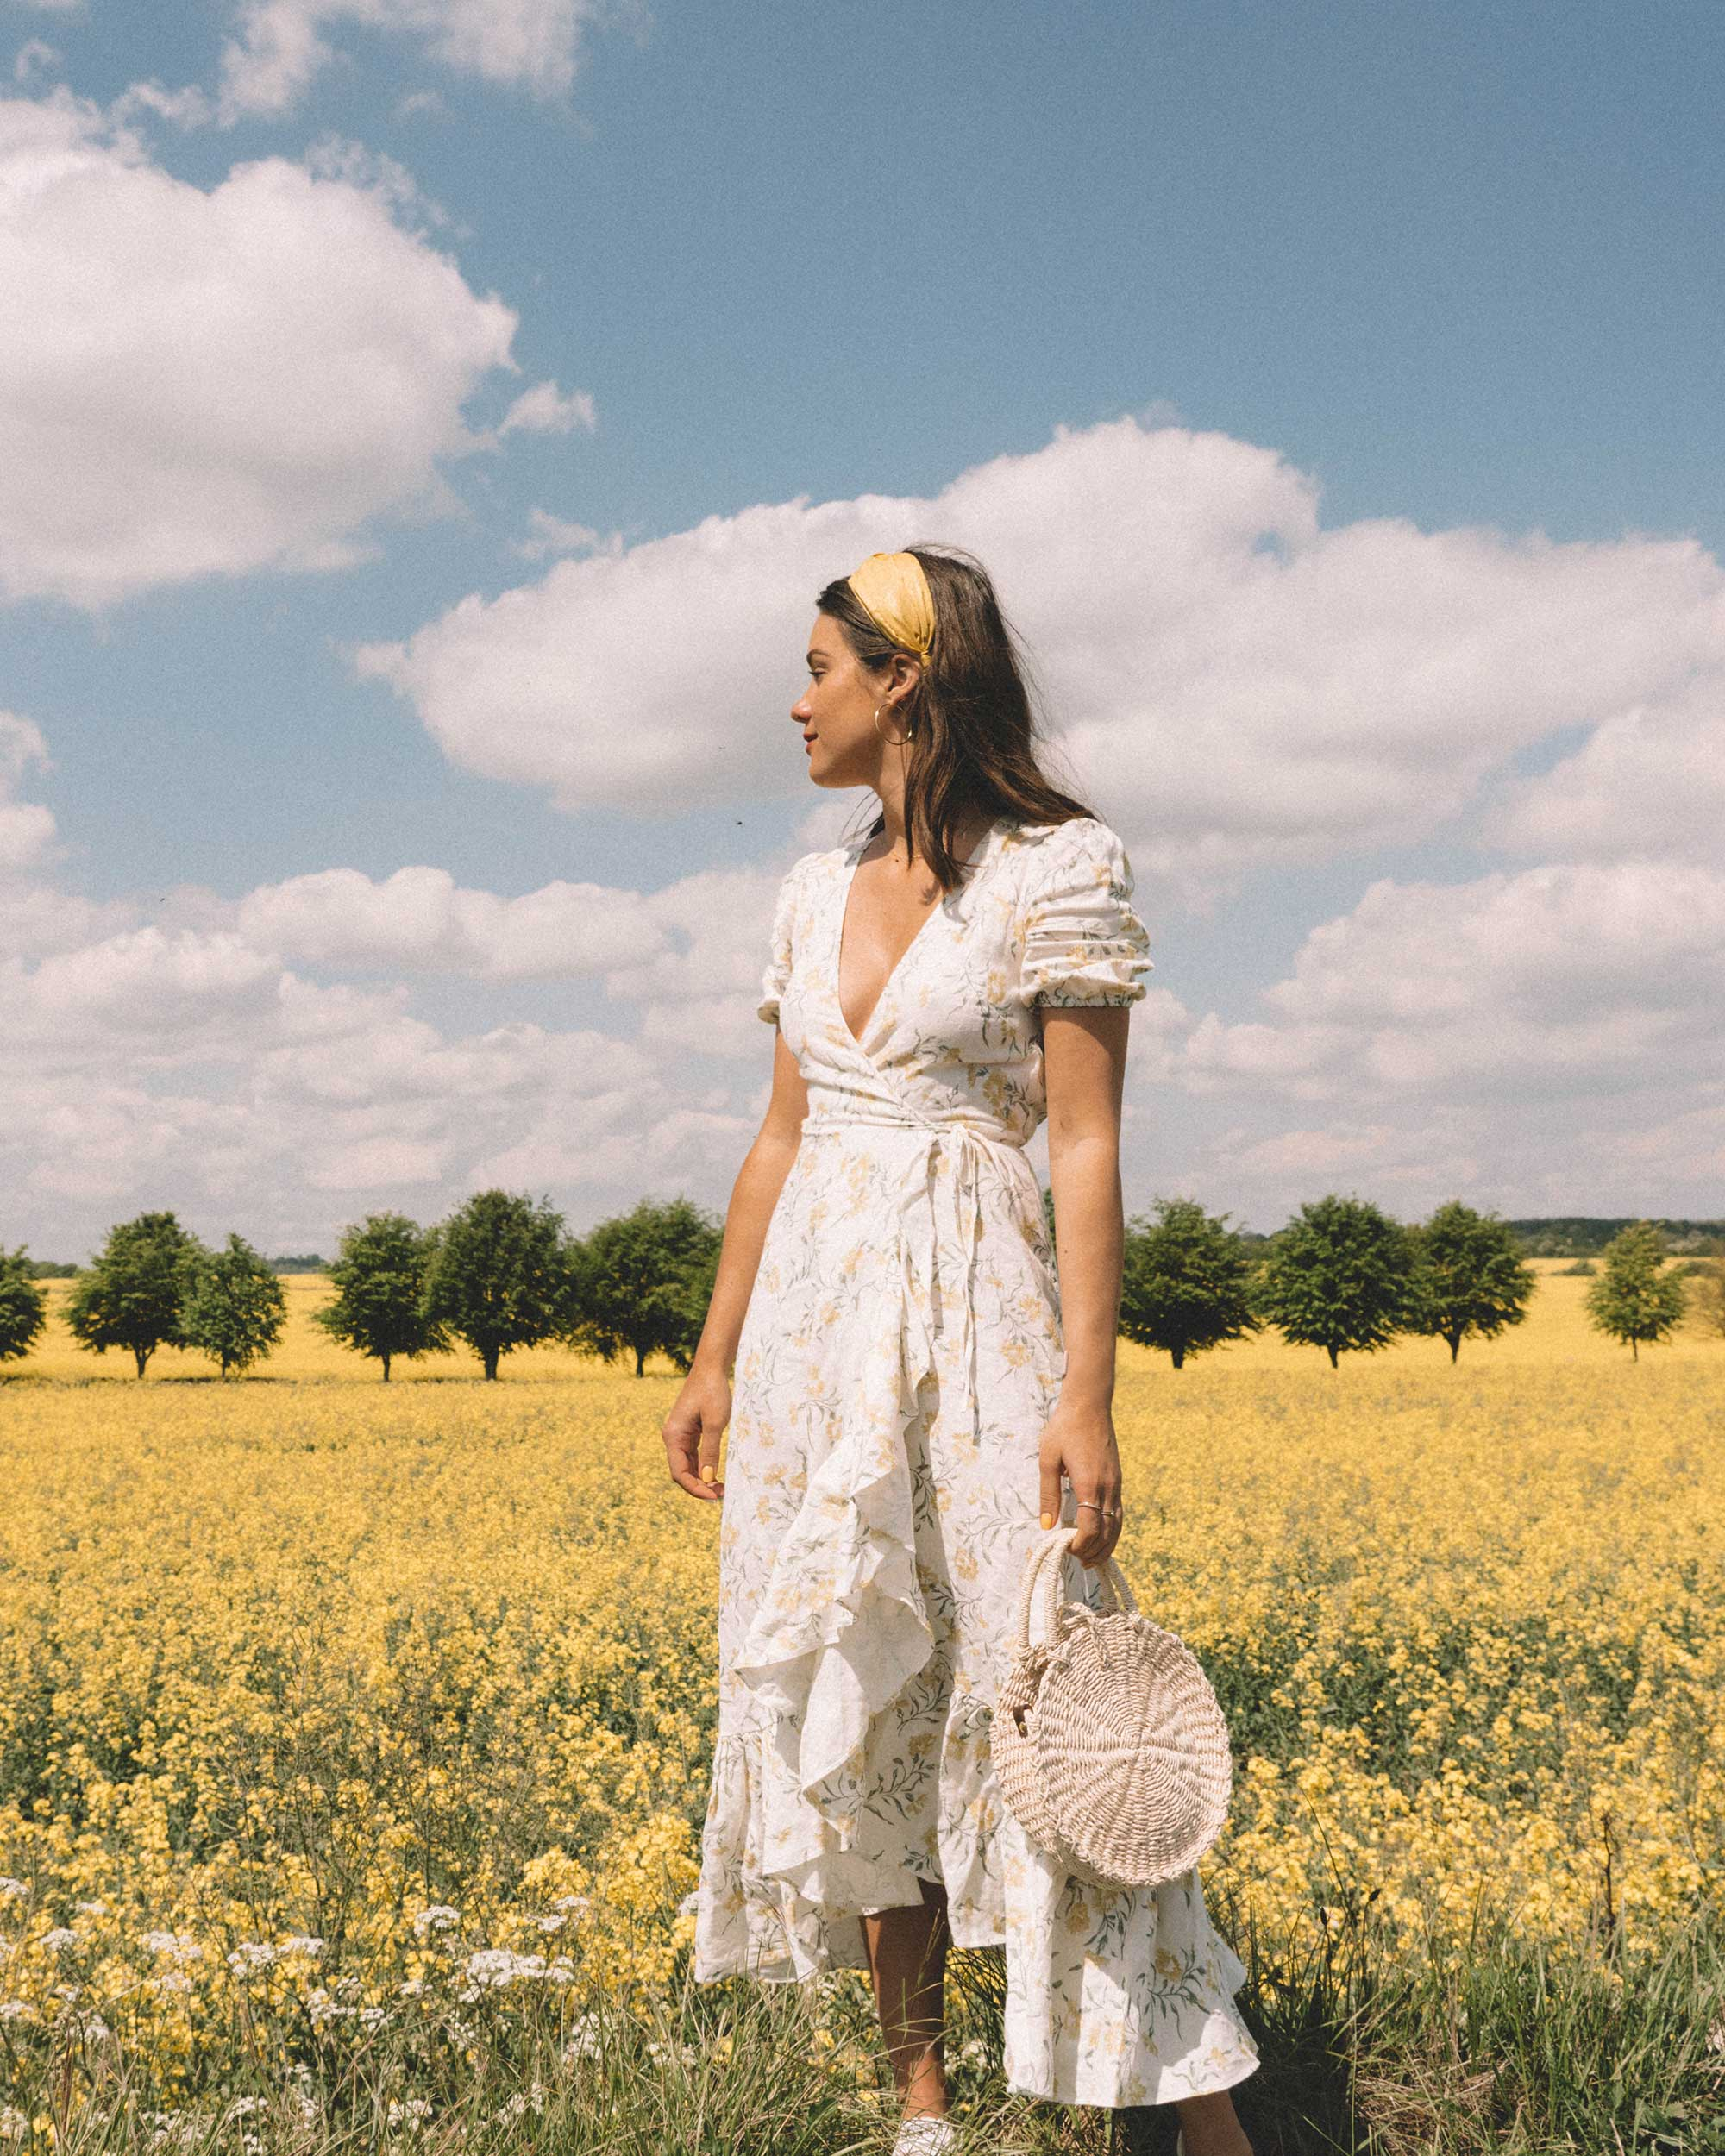 Summer in the English Countryside - Exploring the beauty of the English Countryside in And Other Stories ruffled linen wrap midi dress and round woven bag.